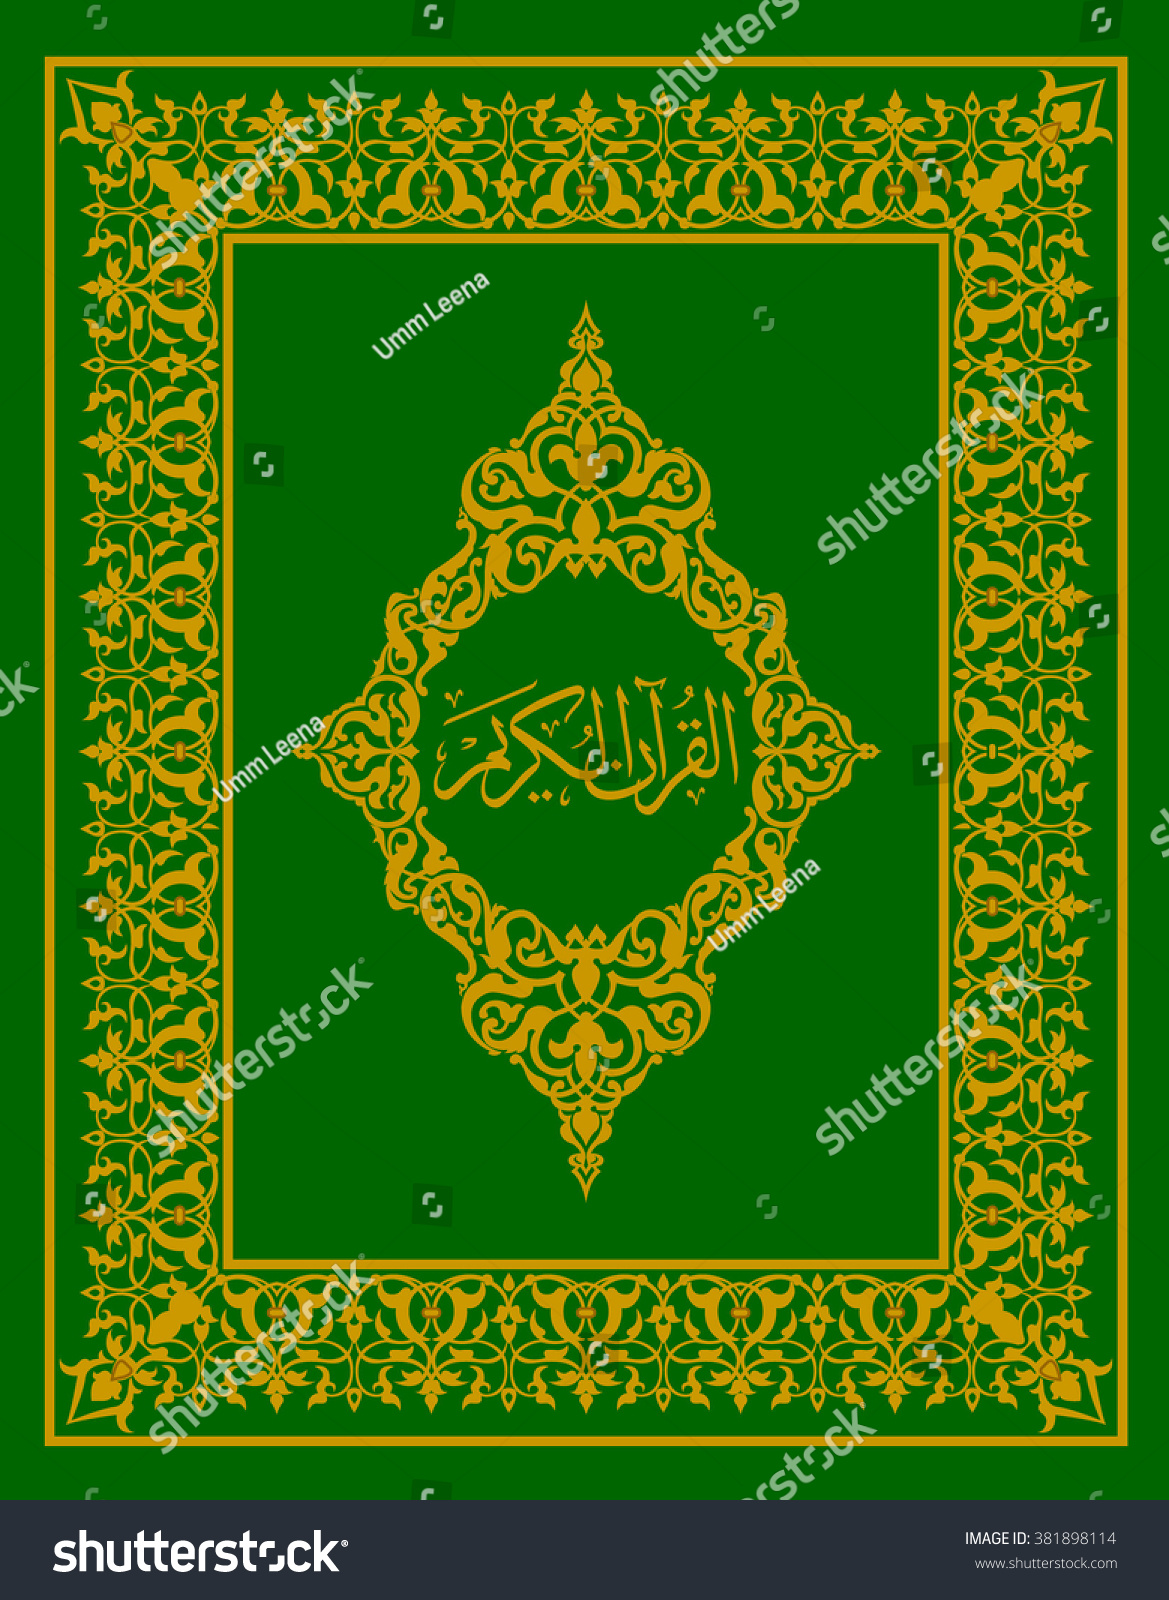 Islamic Book Cover Design Vector : Al quran design pattern free airbrush photoshop